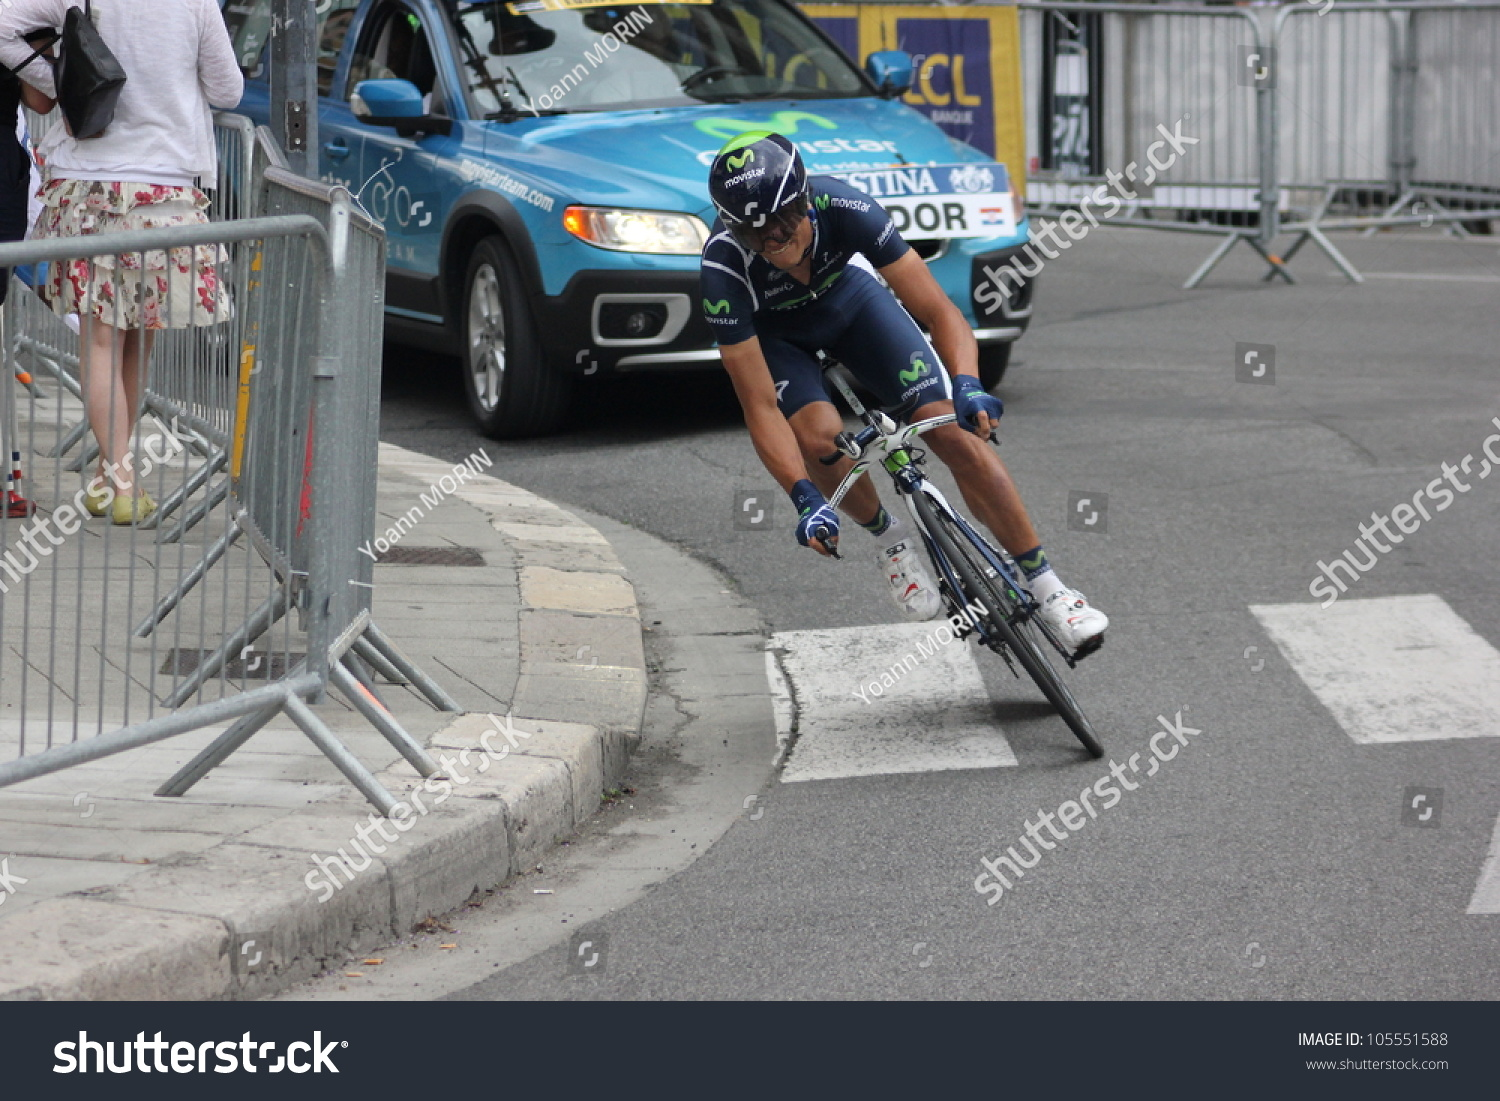 """GRENOBLE, FRANCE - JUN 3: Professional racing cyclist Andrey Amador rides UCI WORLD TOUR """"CRITERIUM DU DAUPHINE LIBERE"""" time trial on June 3, 2012 in Grenoble, France. Luke Durbridge wins the stage"""